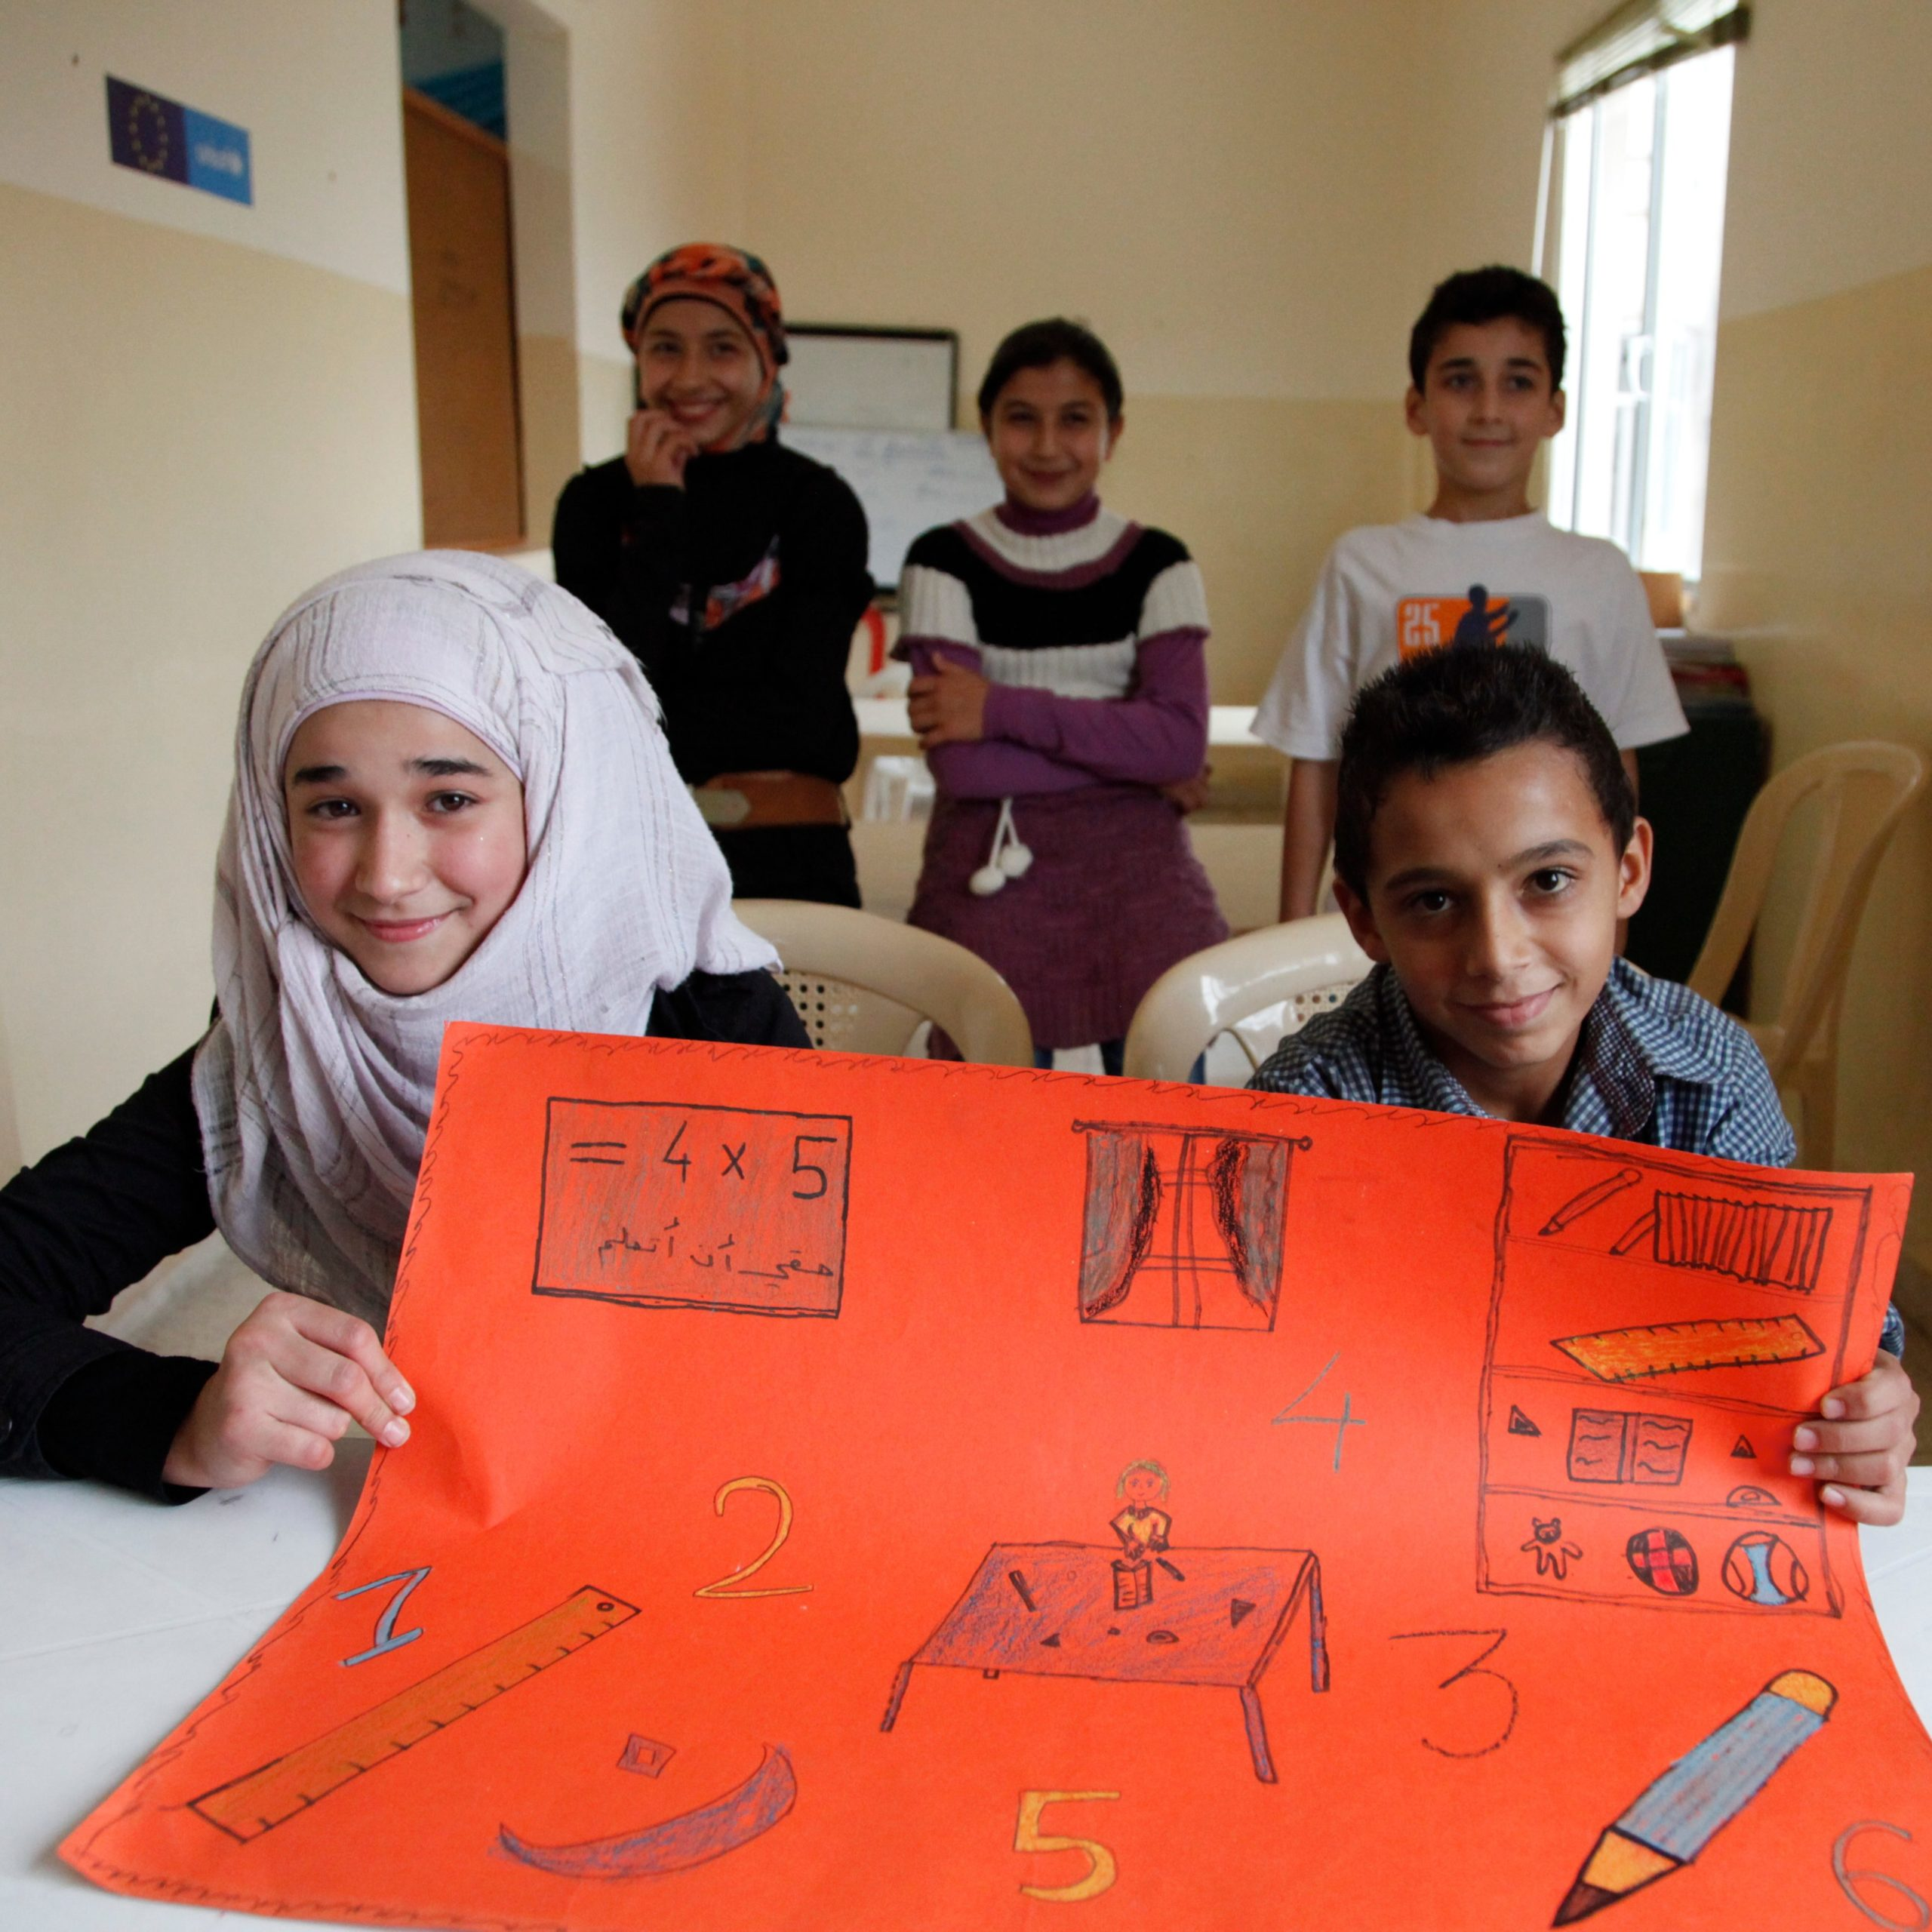 Working with Warchild and UNICEF to get Syrias children back to school in Lebanon